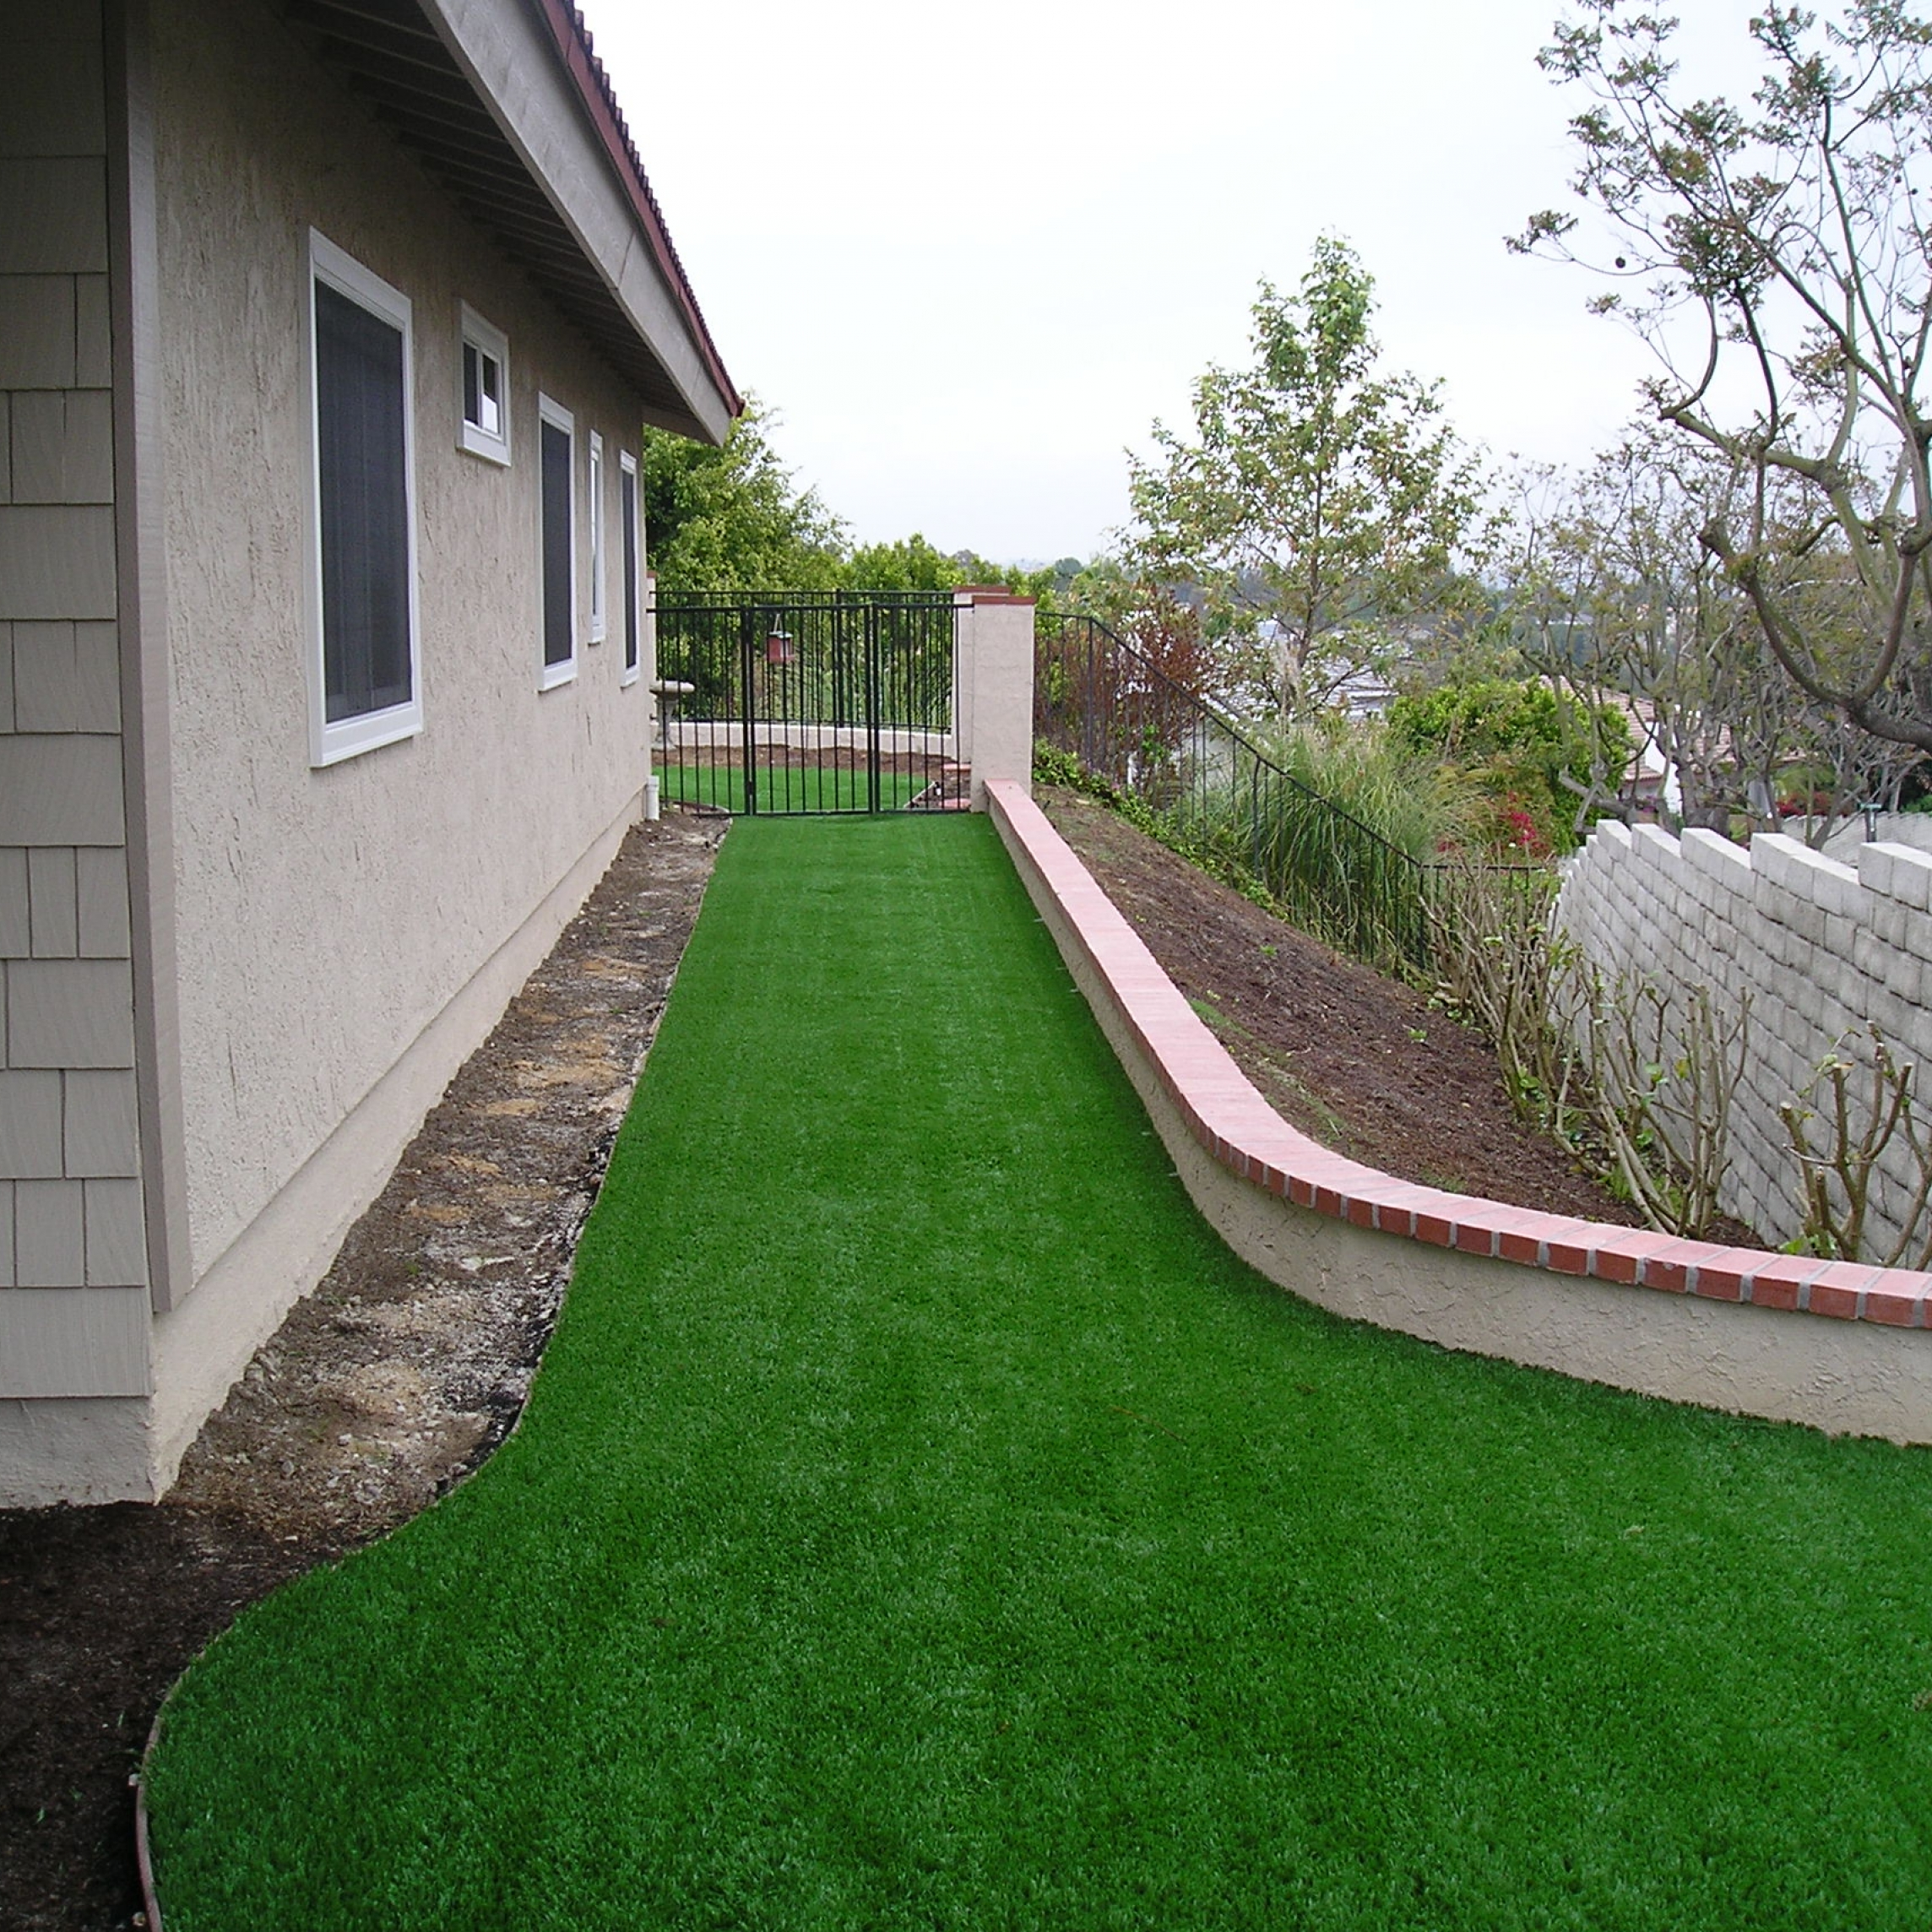 Riviera Monterey-50 fake green grass,green grass carpet,artificial turf,synthetic turf,artificial turf installation,how to install artificial turf,used artificial turf